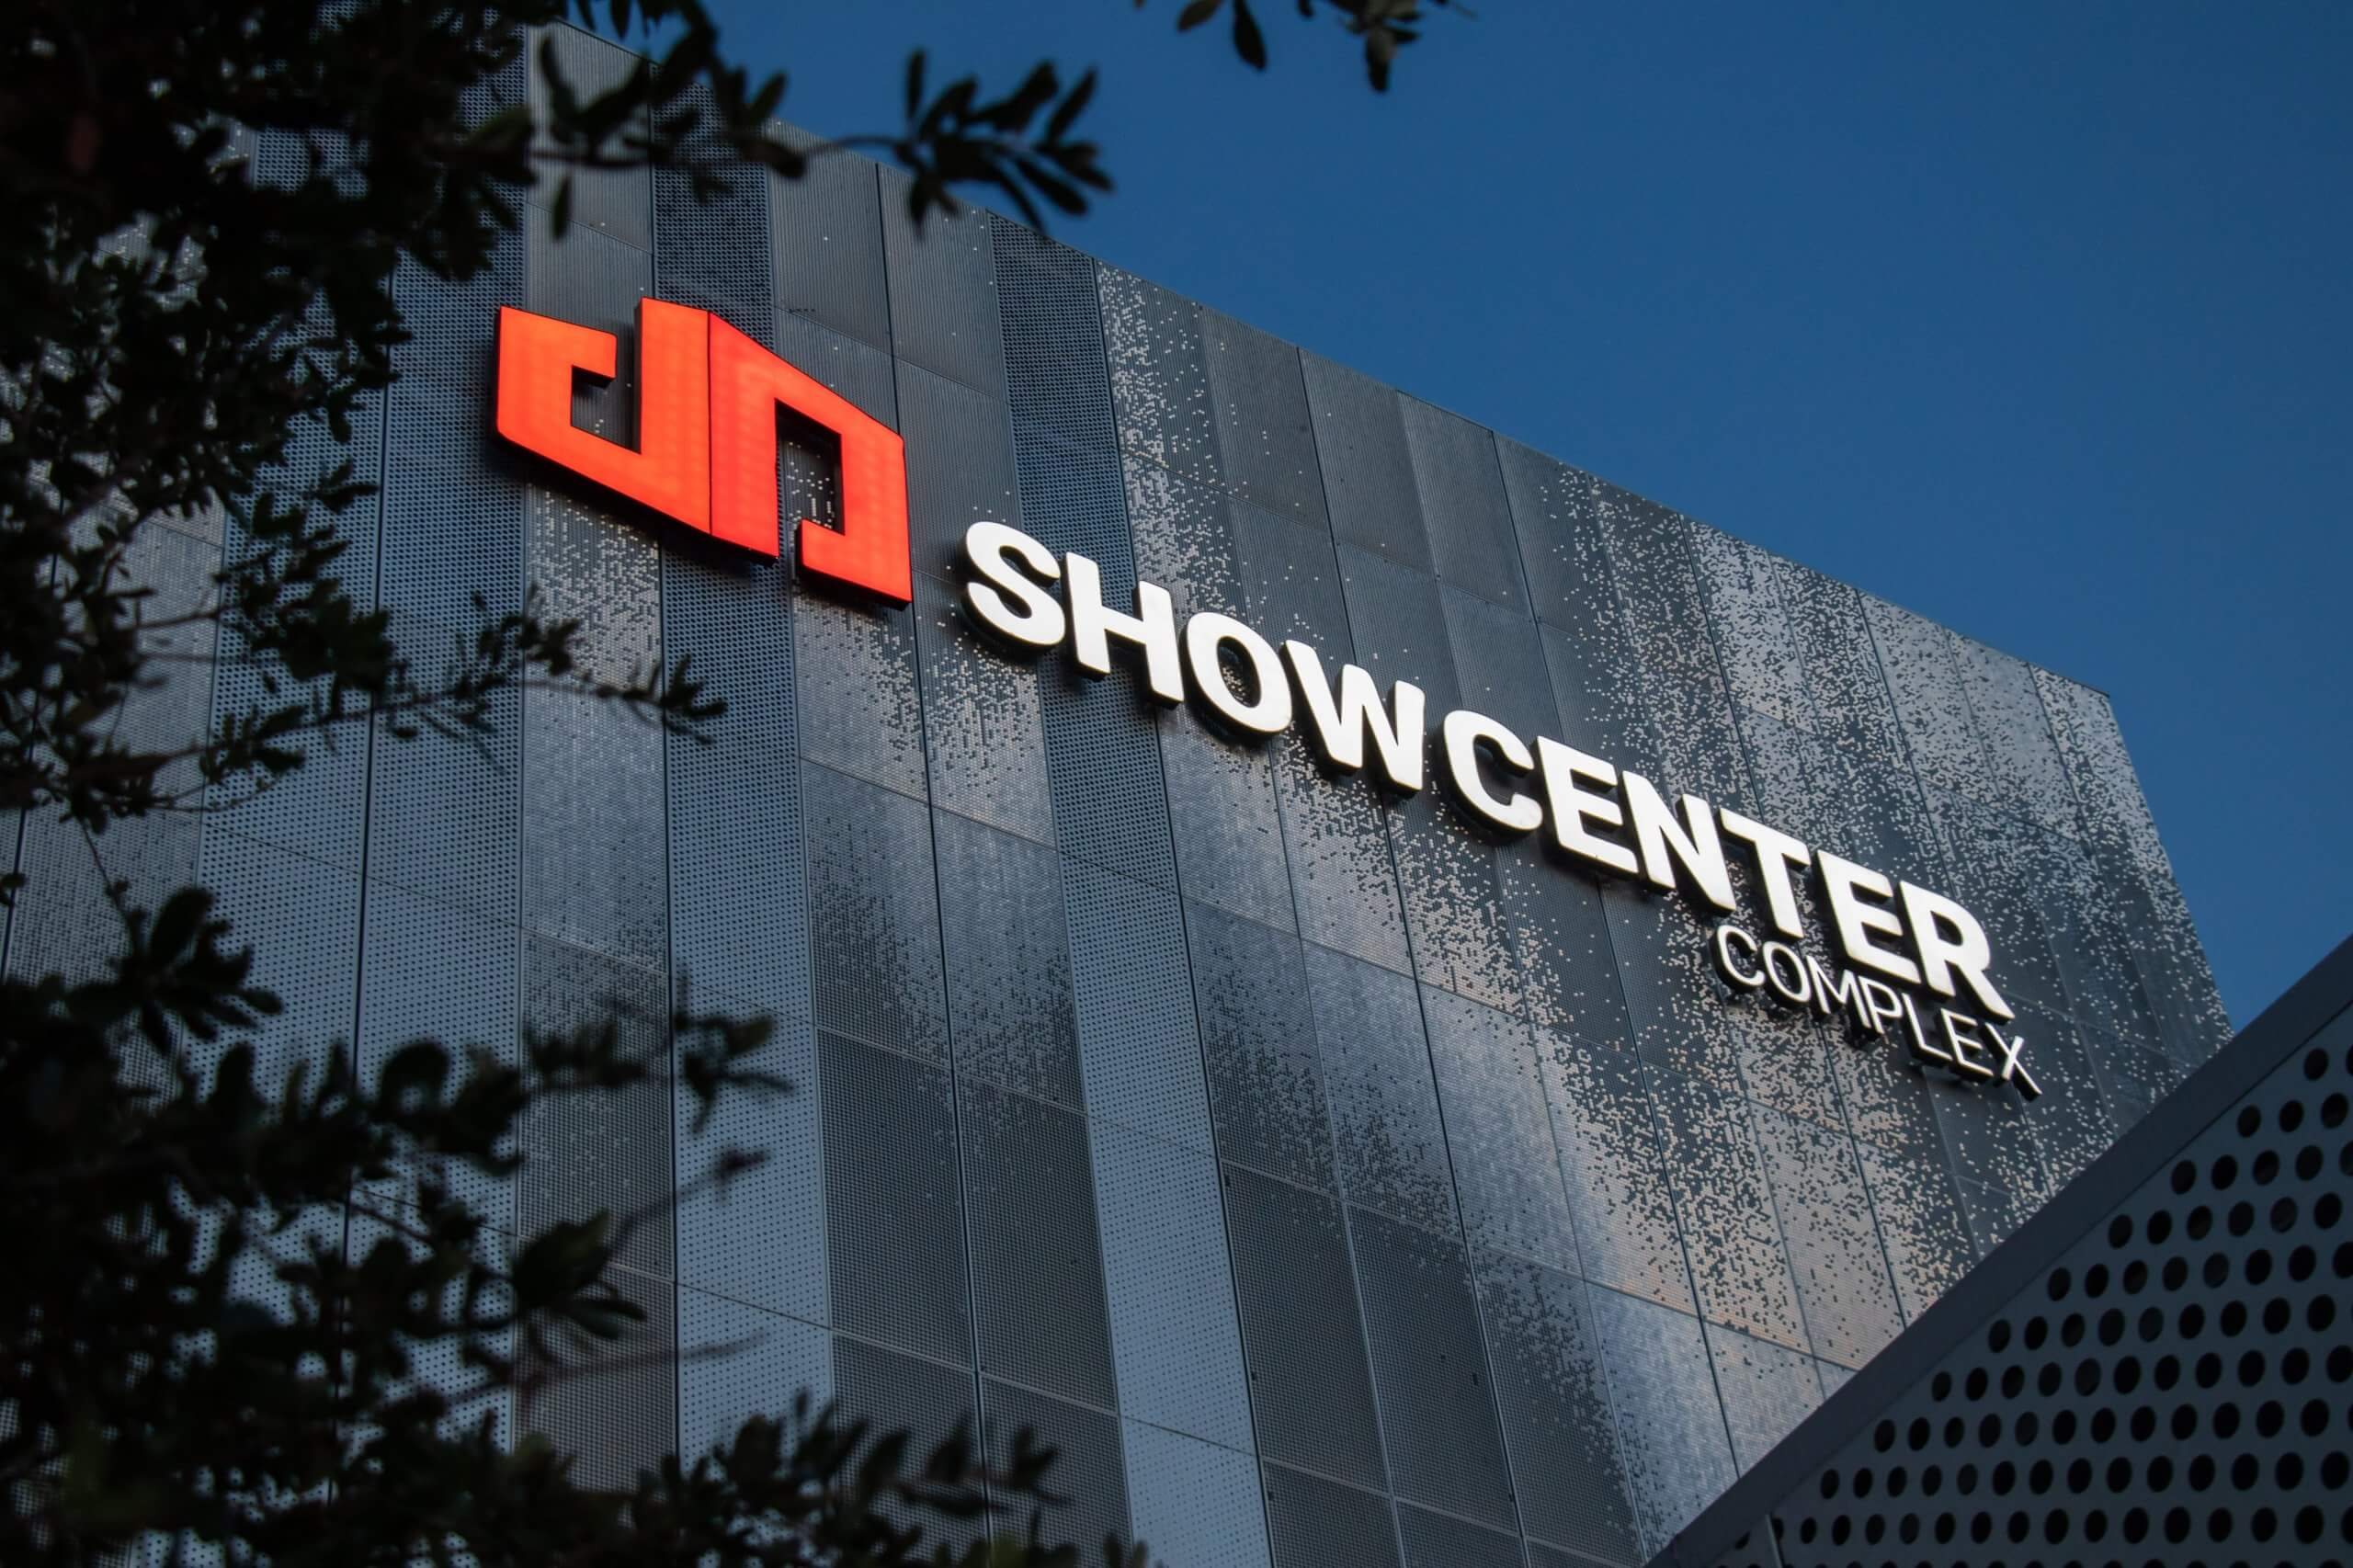 Ombrae-Showcenter_©Astyl-28